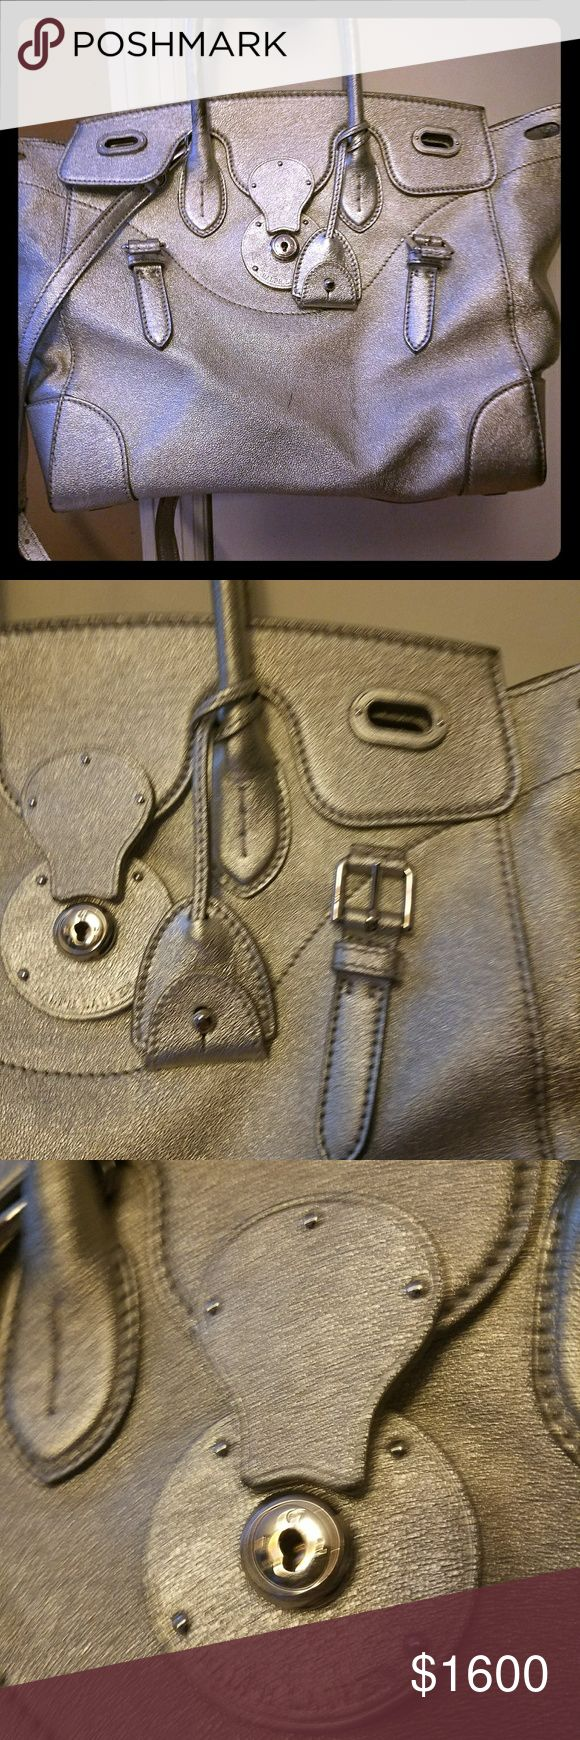 Ralph Lauren Metallic Ricky Bag Large metallic silver tote with removable strap and cloth storage bag Ralph Lauren Bags Totes